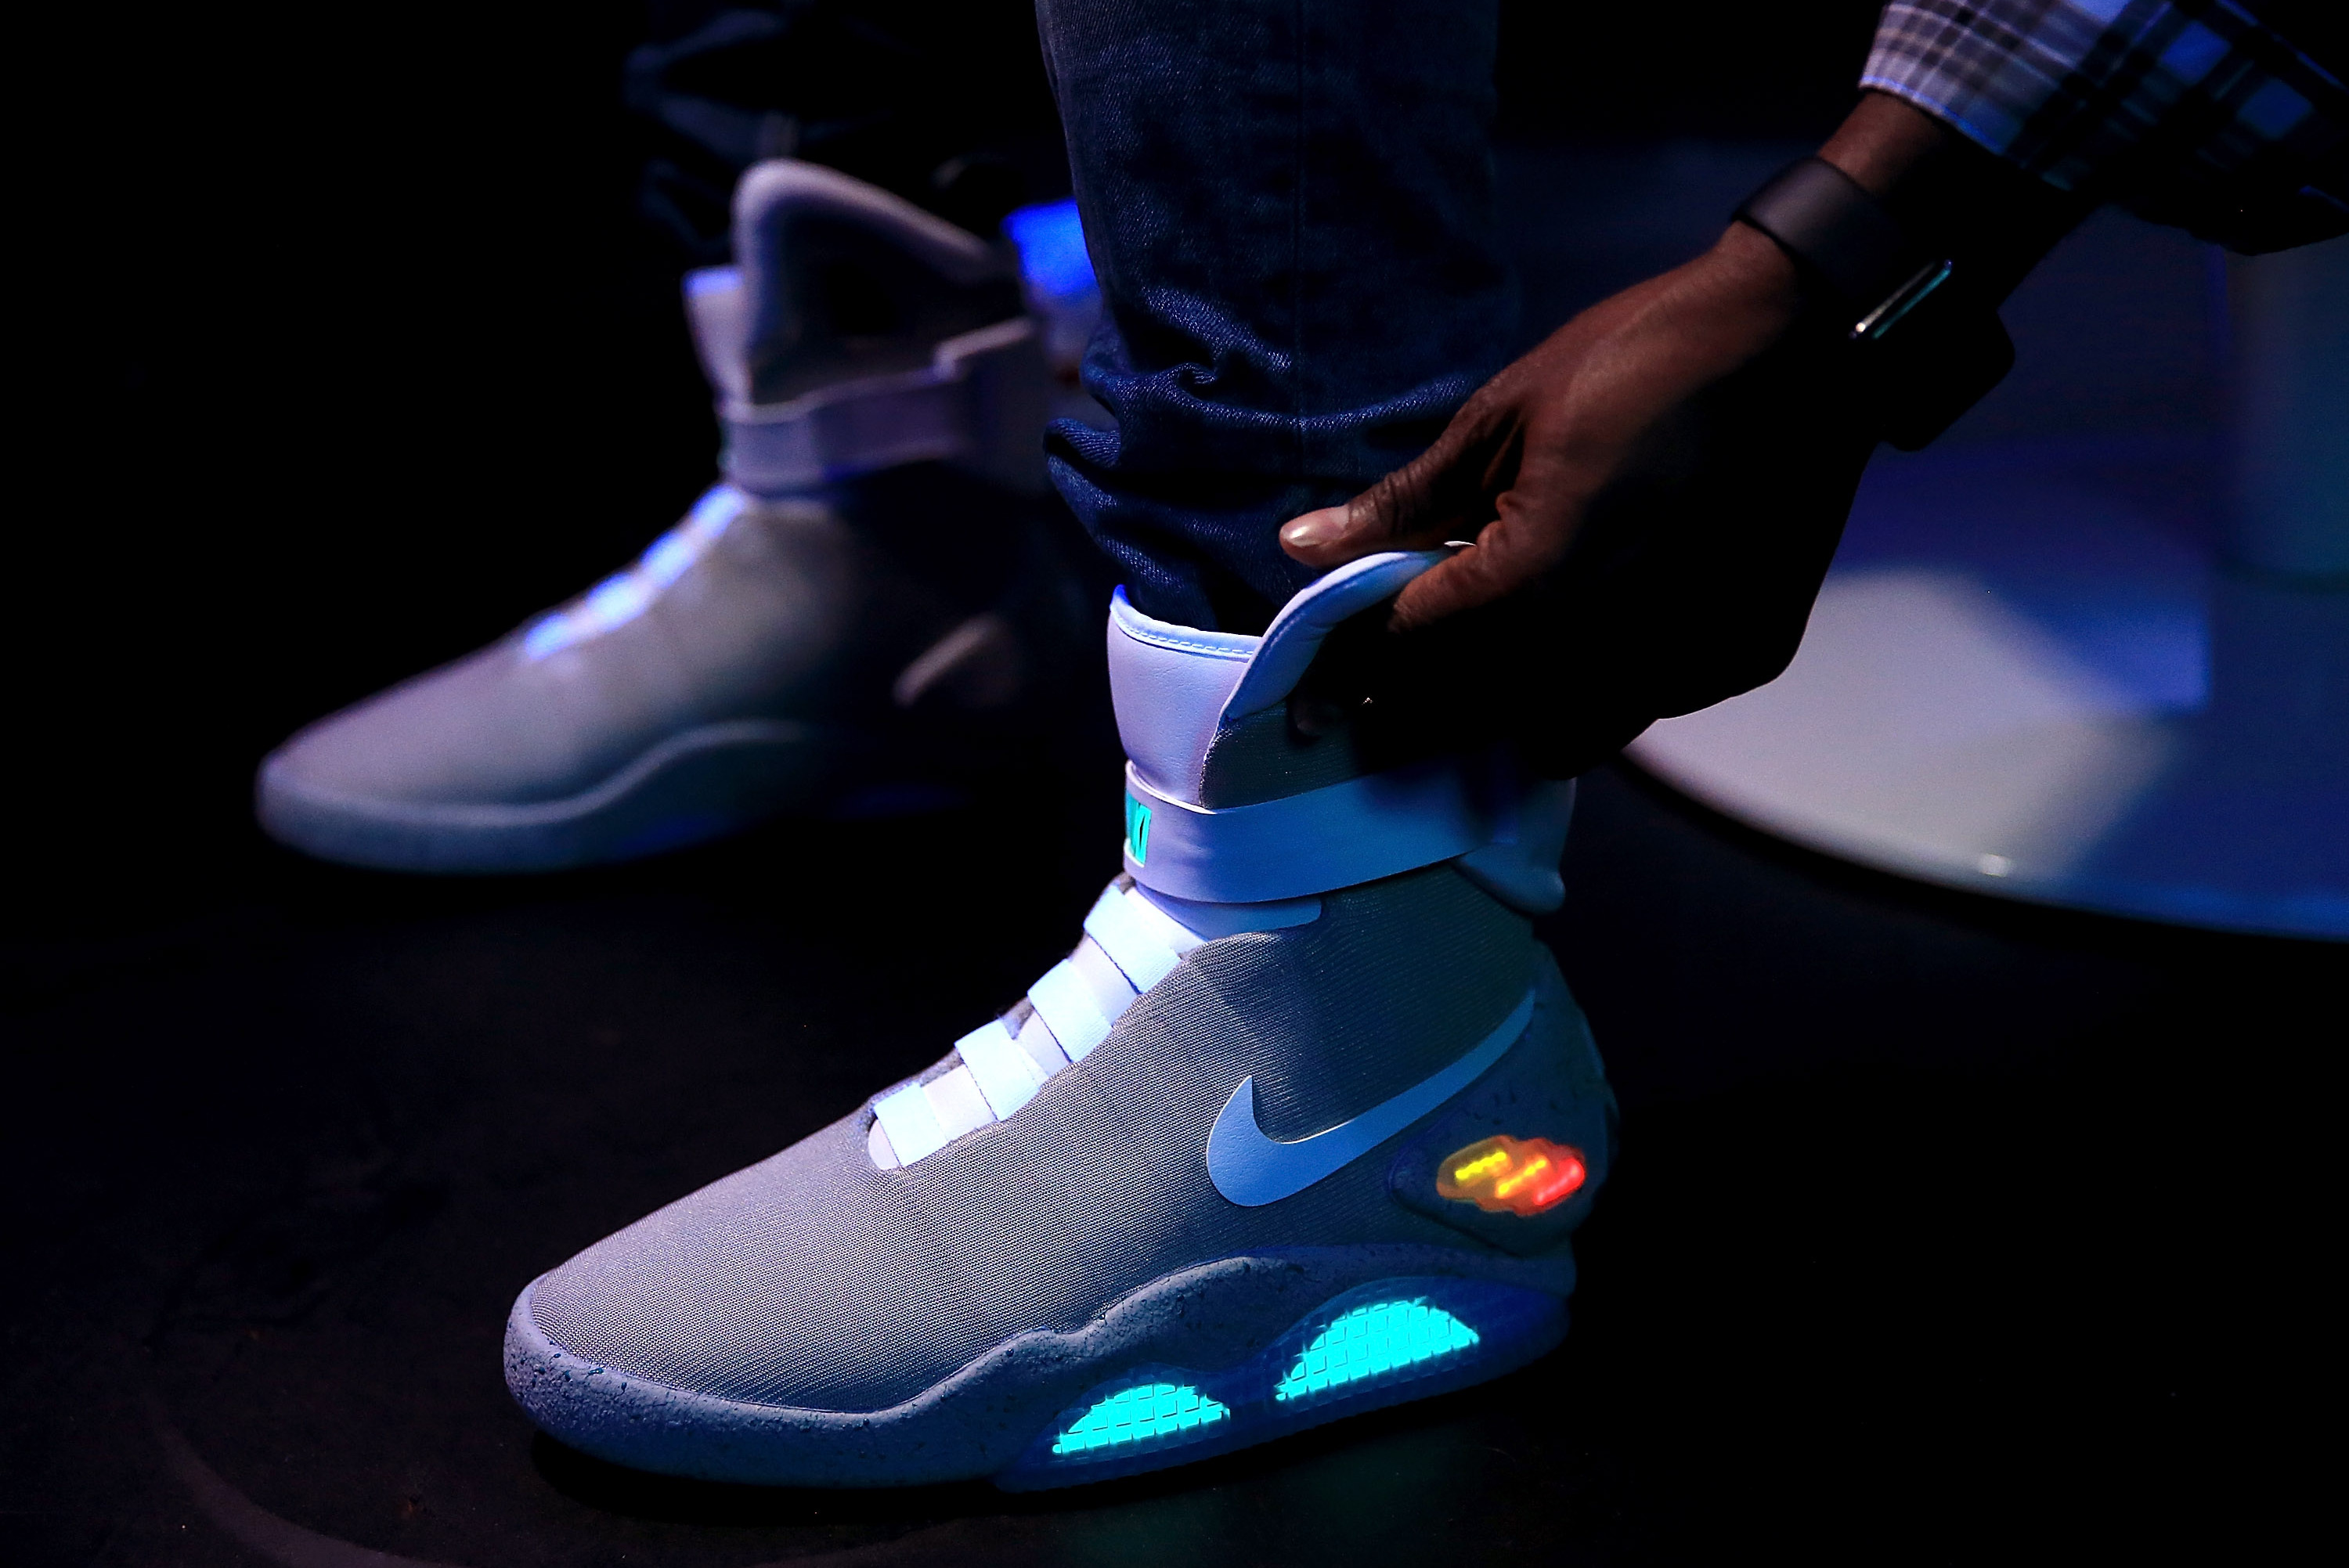 Floración firma Pendiente  6 Pairs of Rare Nike MAG Reportedly Found in Expired Oregon Storage Unit |  Bleacher Report | Latest News, Videos and Highlights